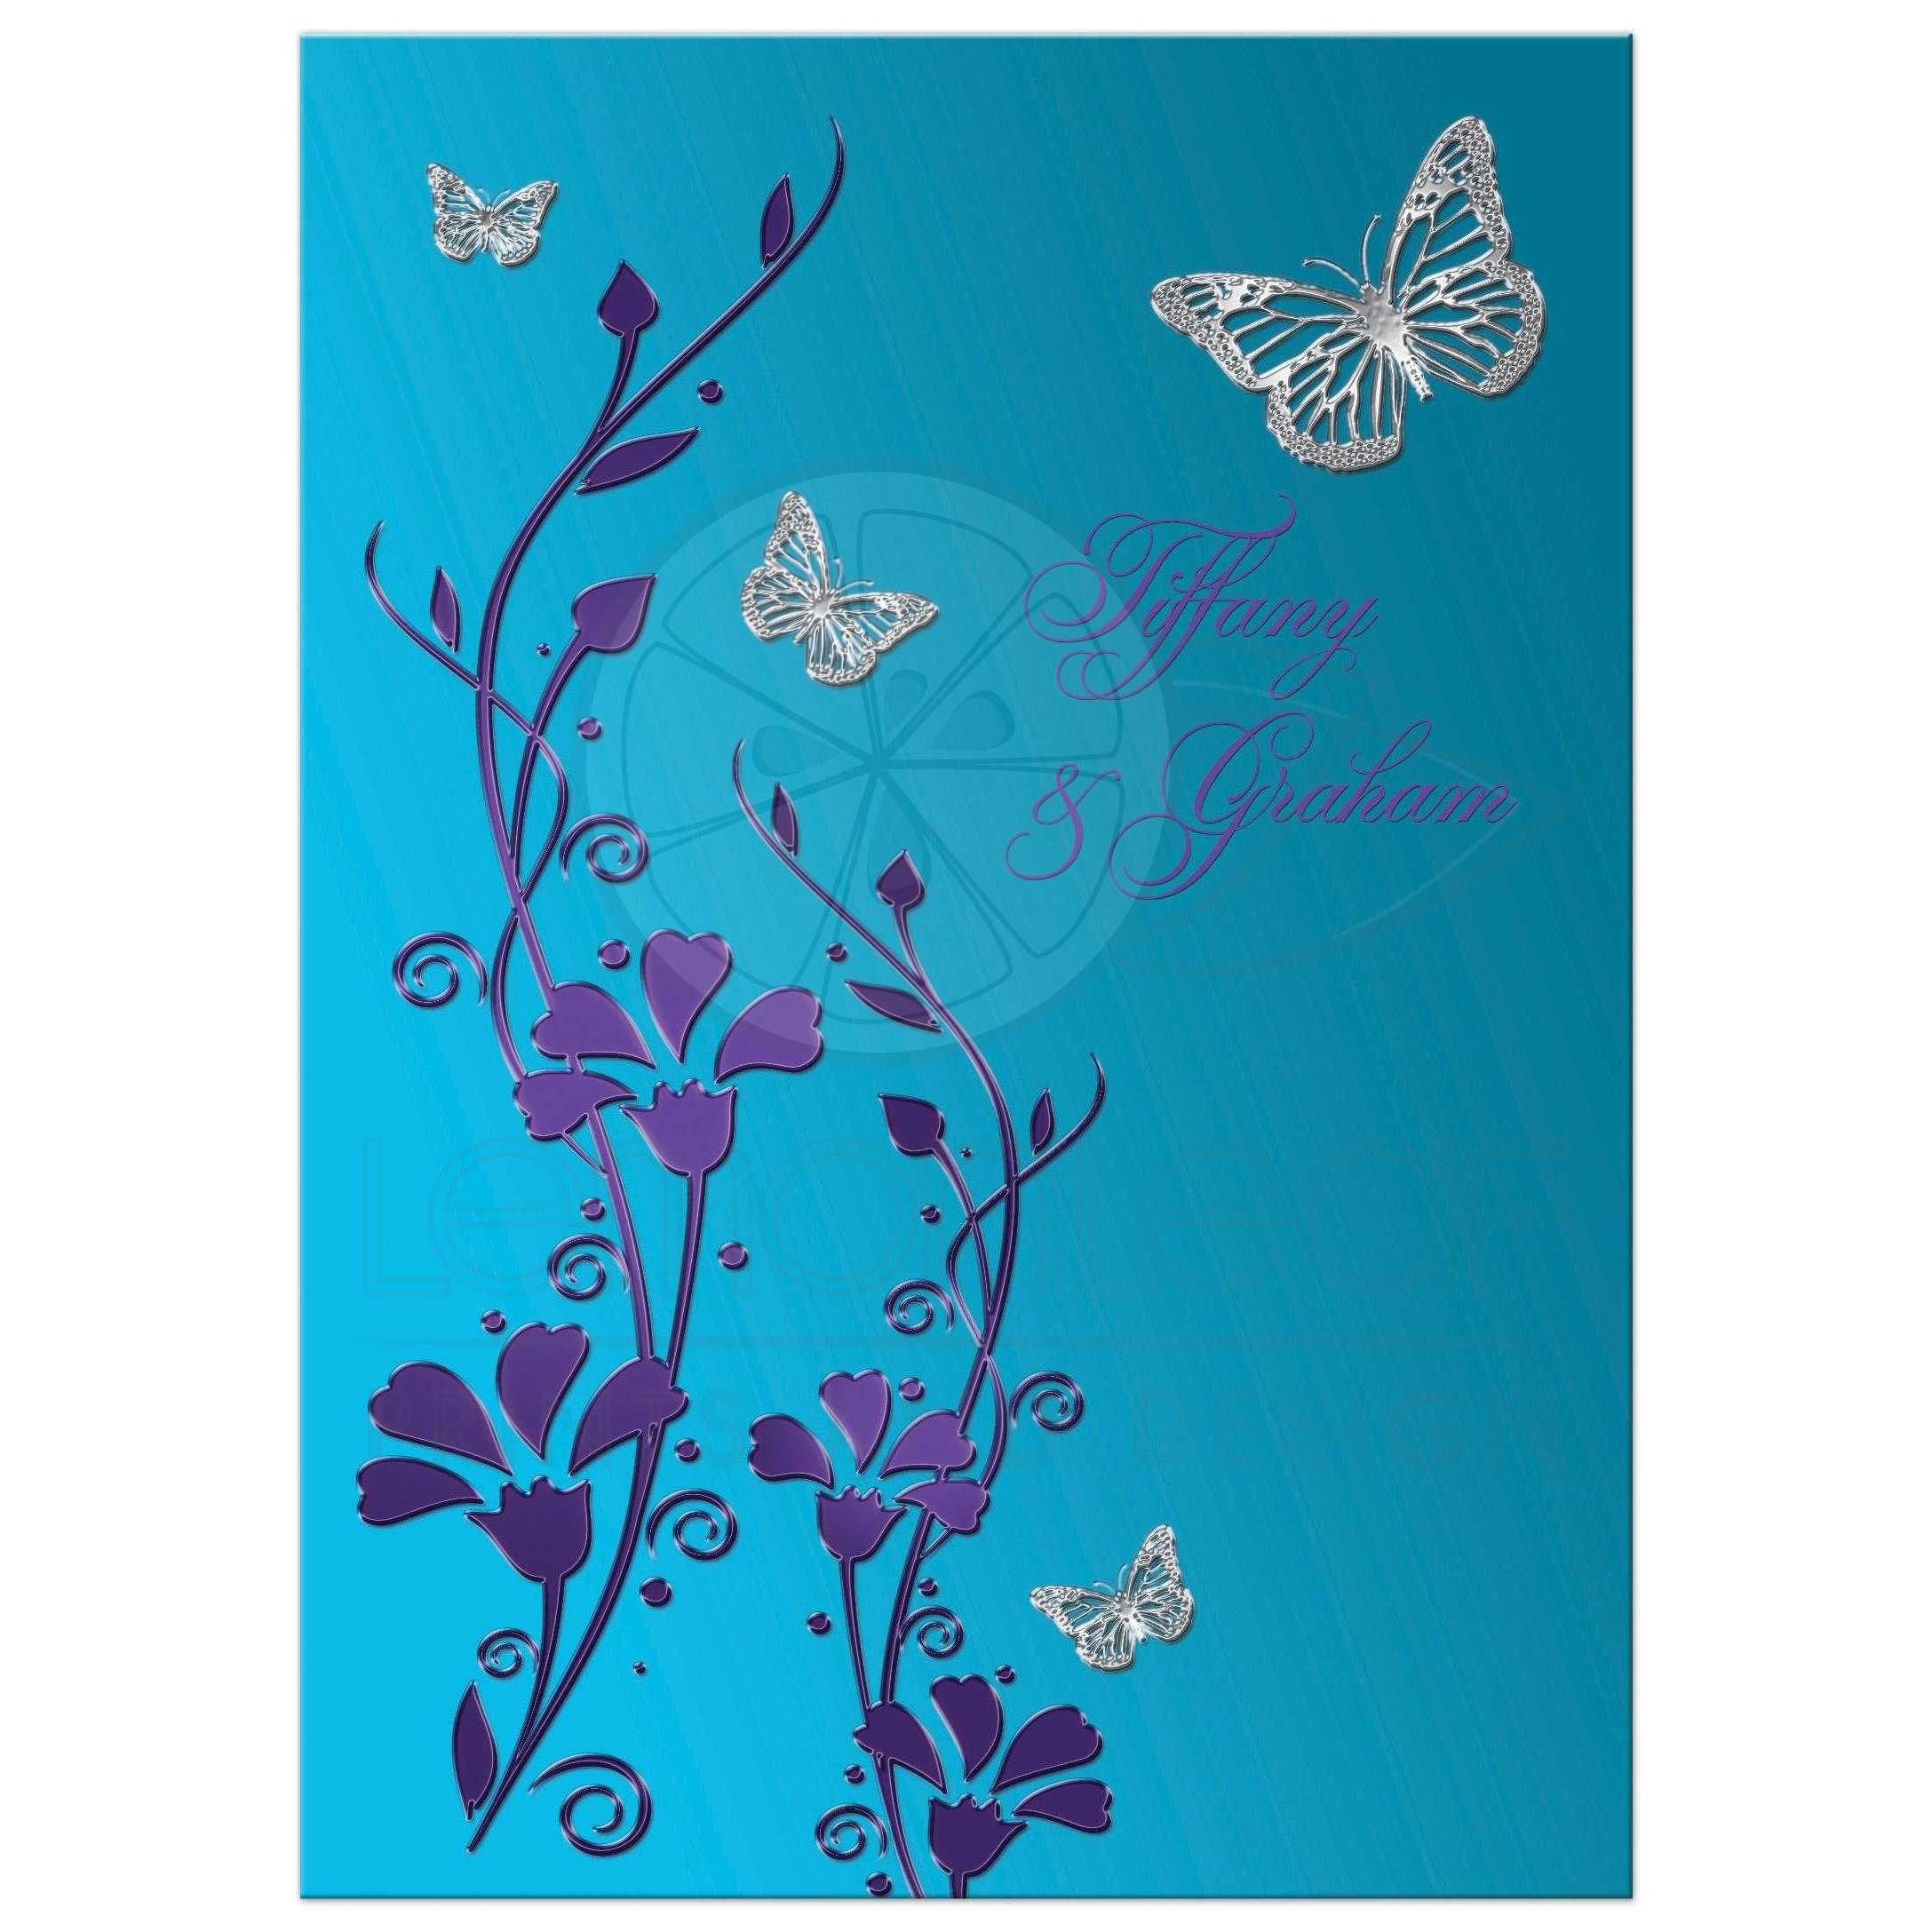 Great Turquoise Or Teal Blue And Purple Floral Wedding Invitation With Flowers Silver Butterflies